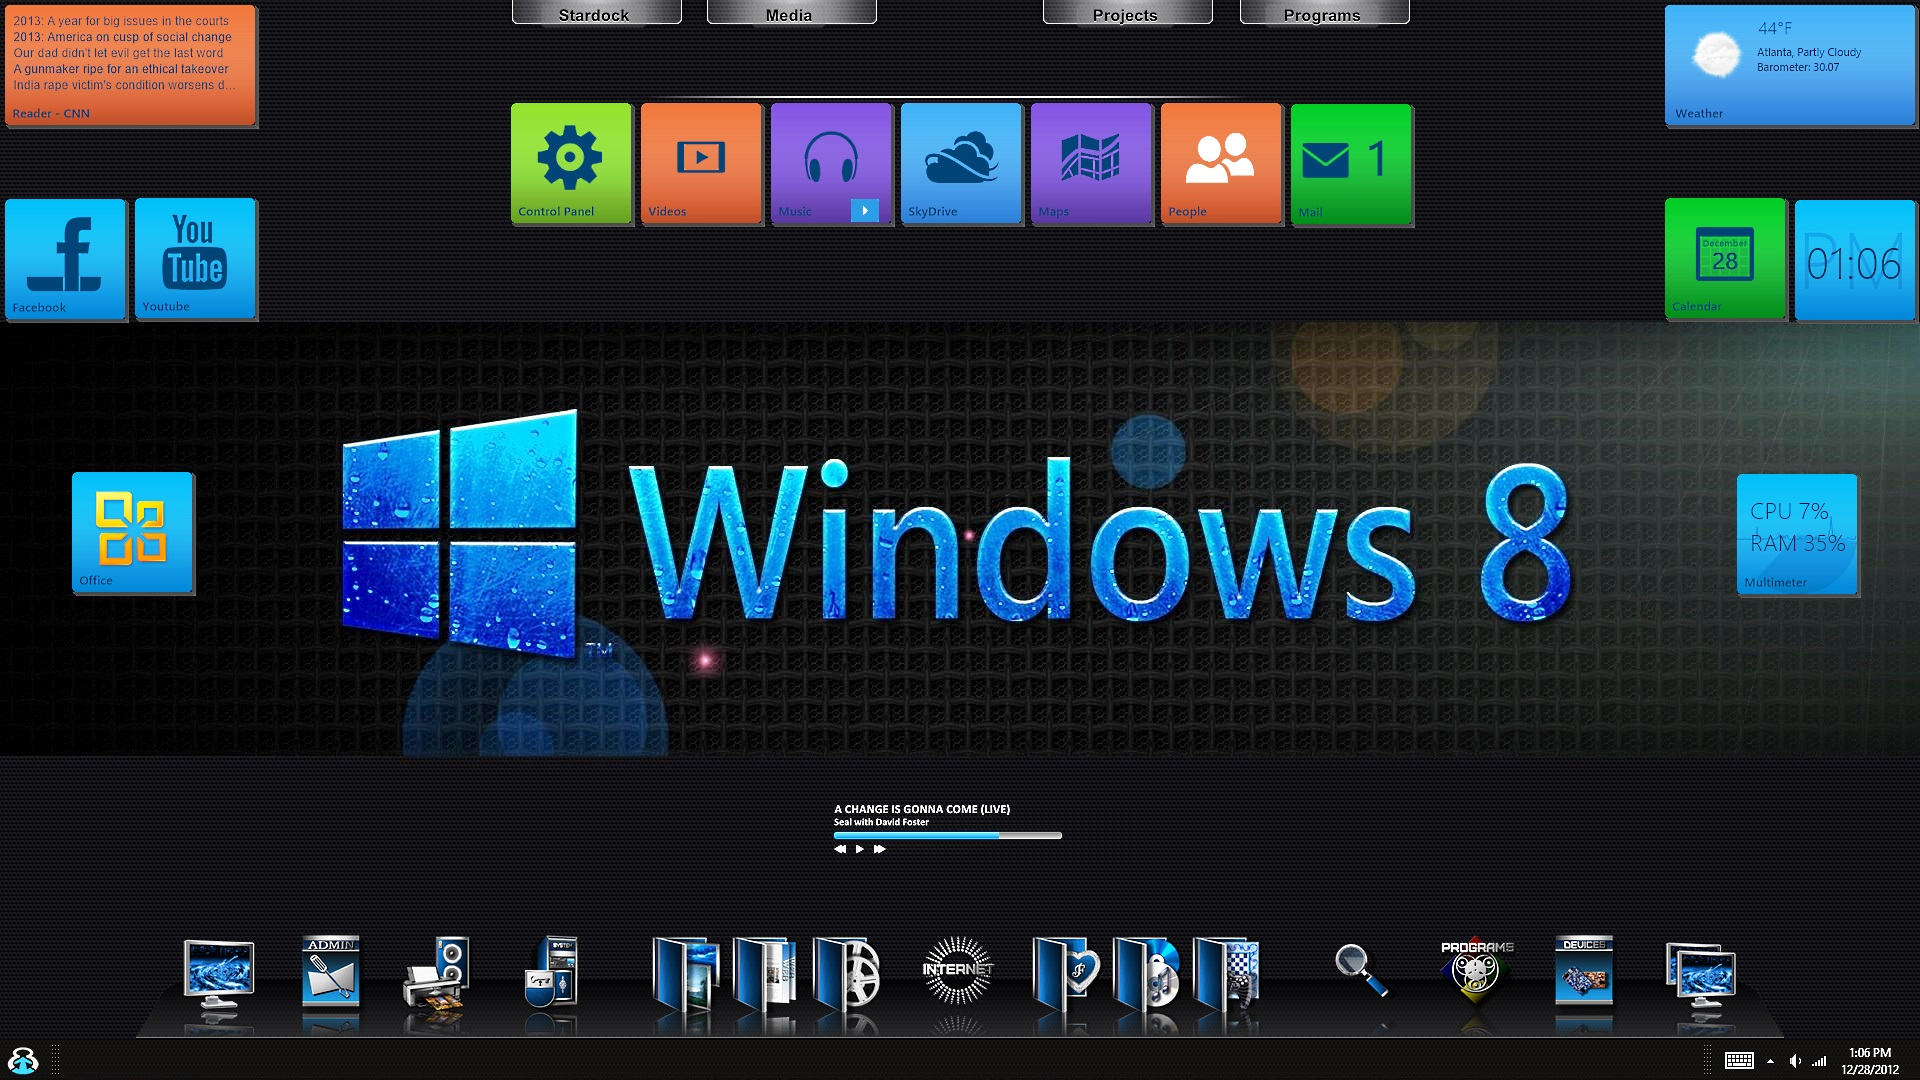 Windows 8 Pro Blue